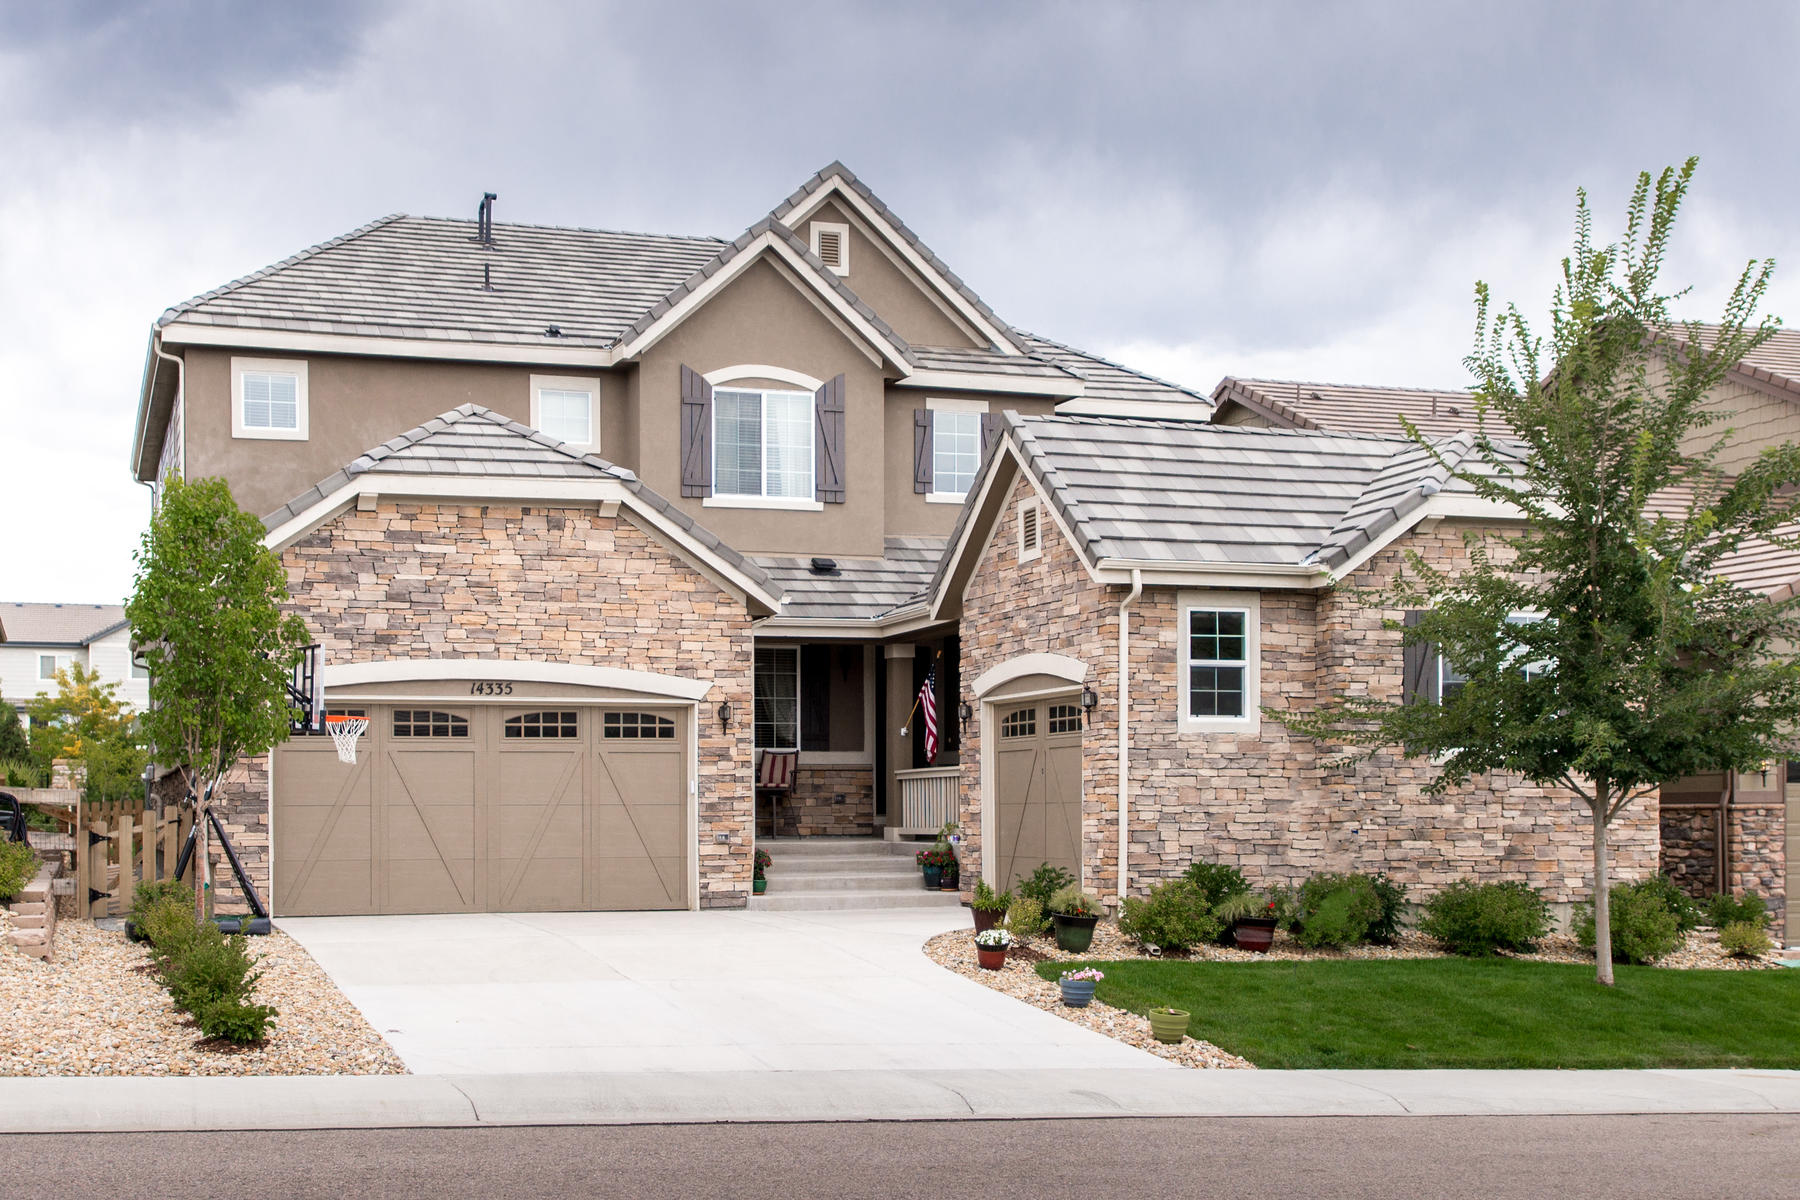 Single Family Home for Active at An extraordinary home with modern living flair. 14335 Glenayre Cir Parker, Colorado 80134 United States